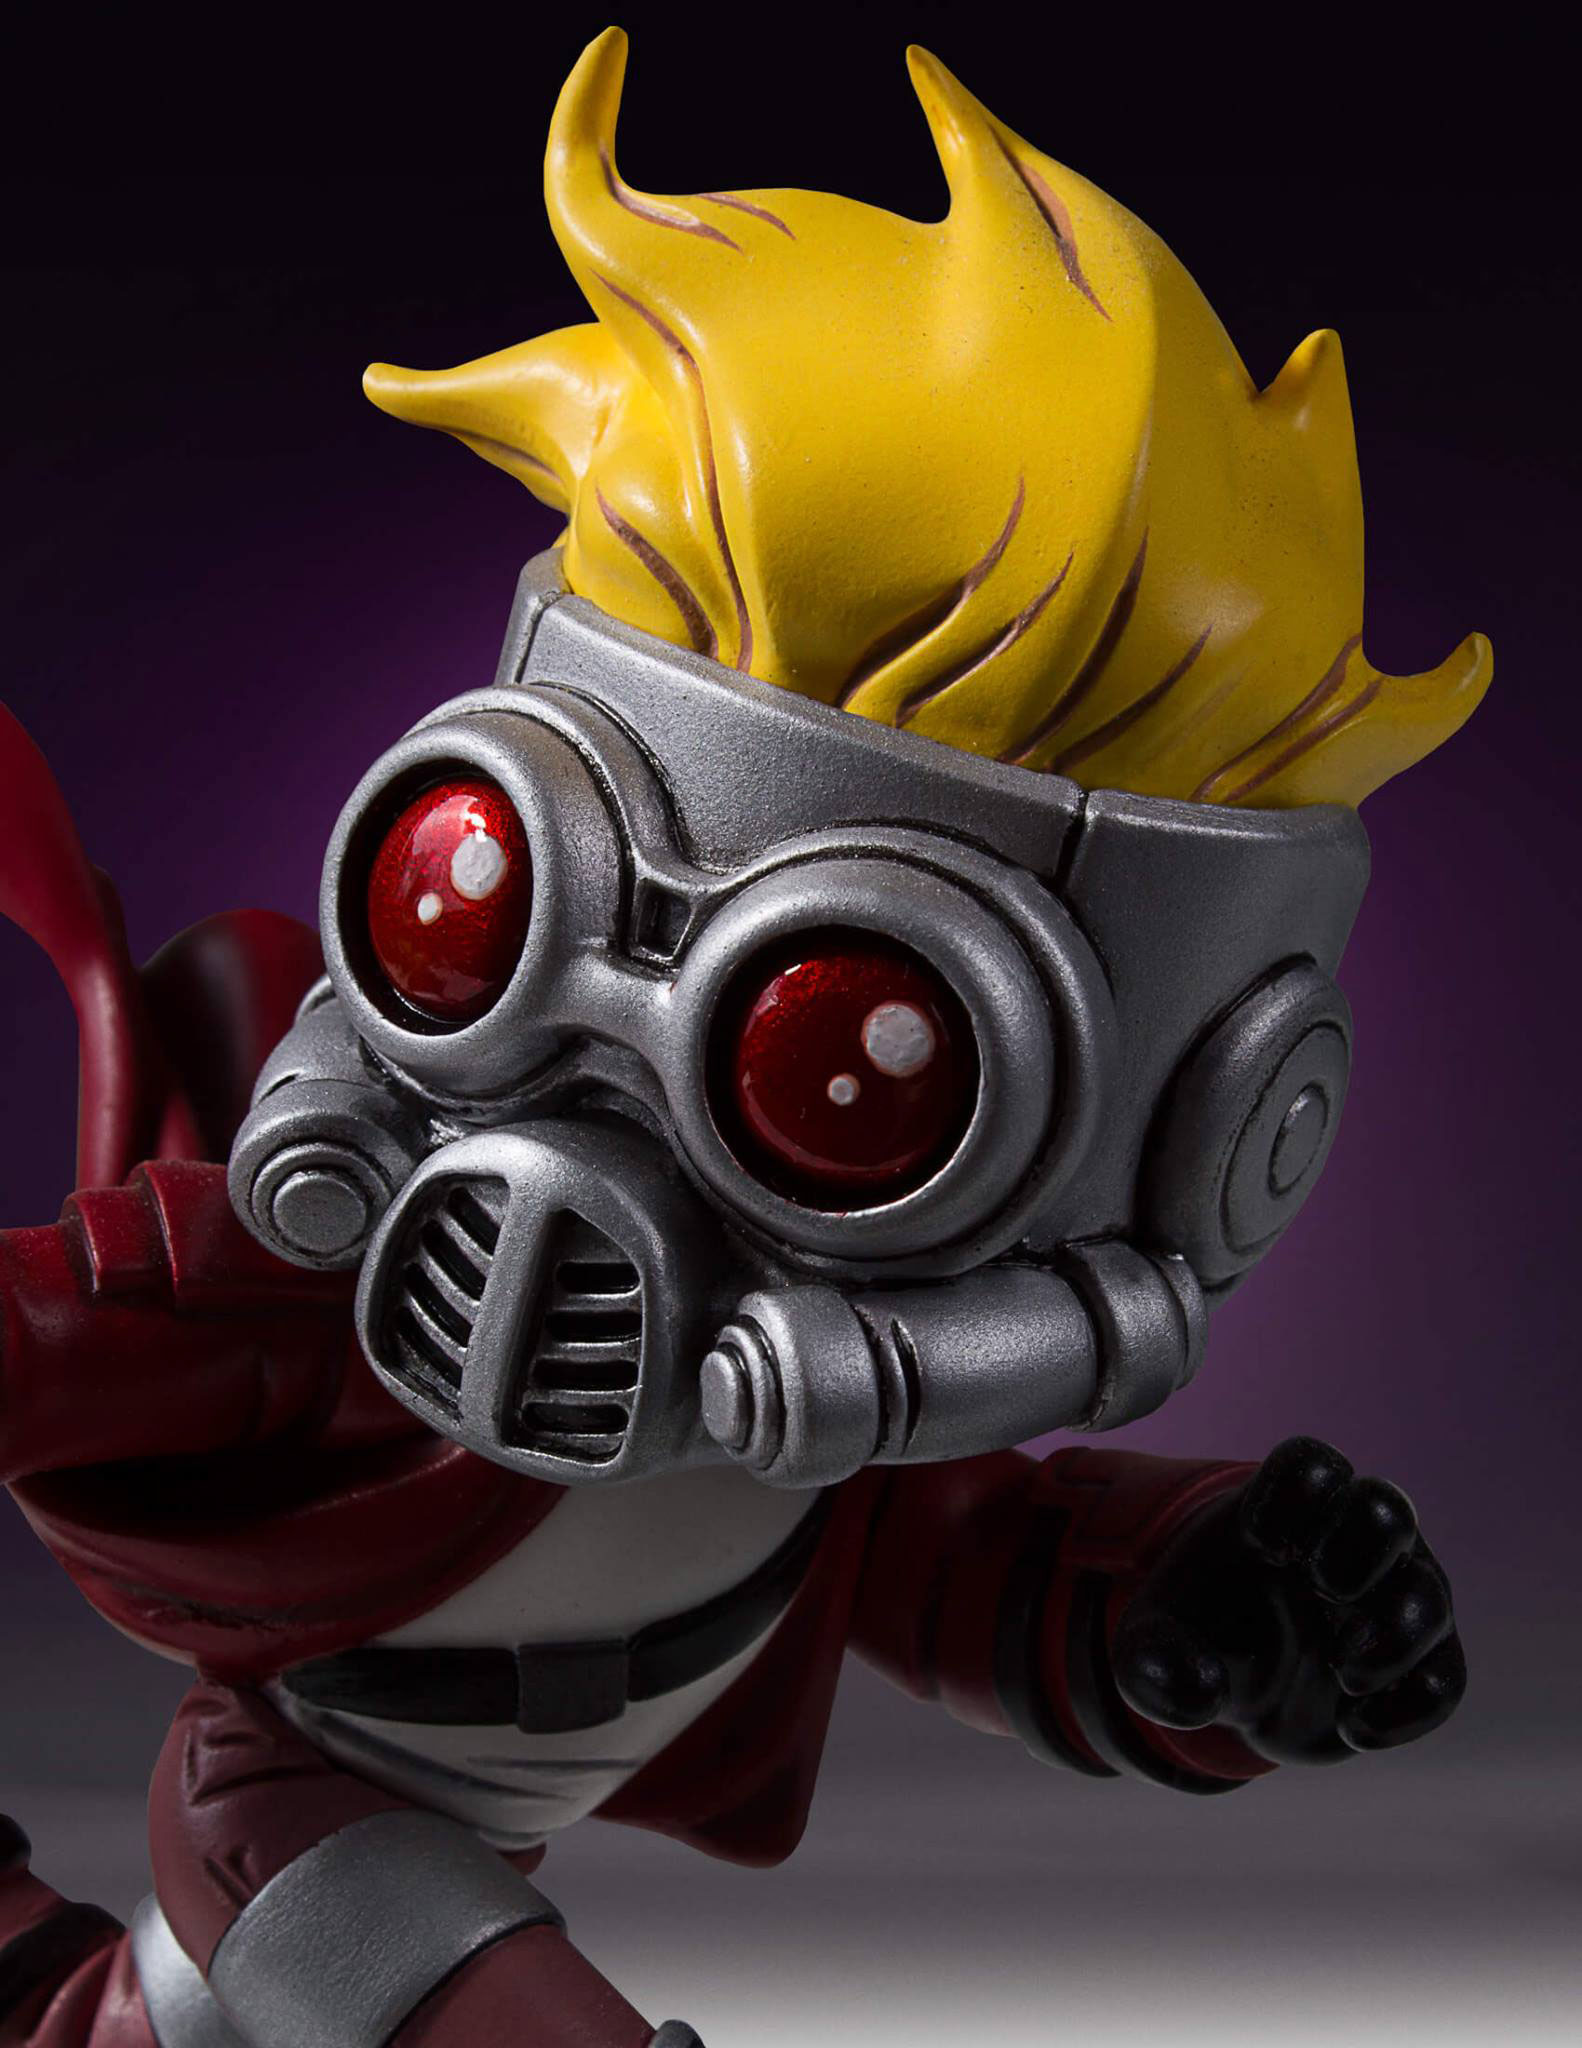 gentle-giant-star-lord-guardians-of-the-galaxy-statue-4